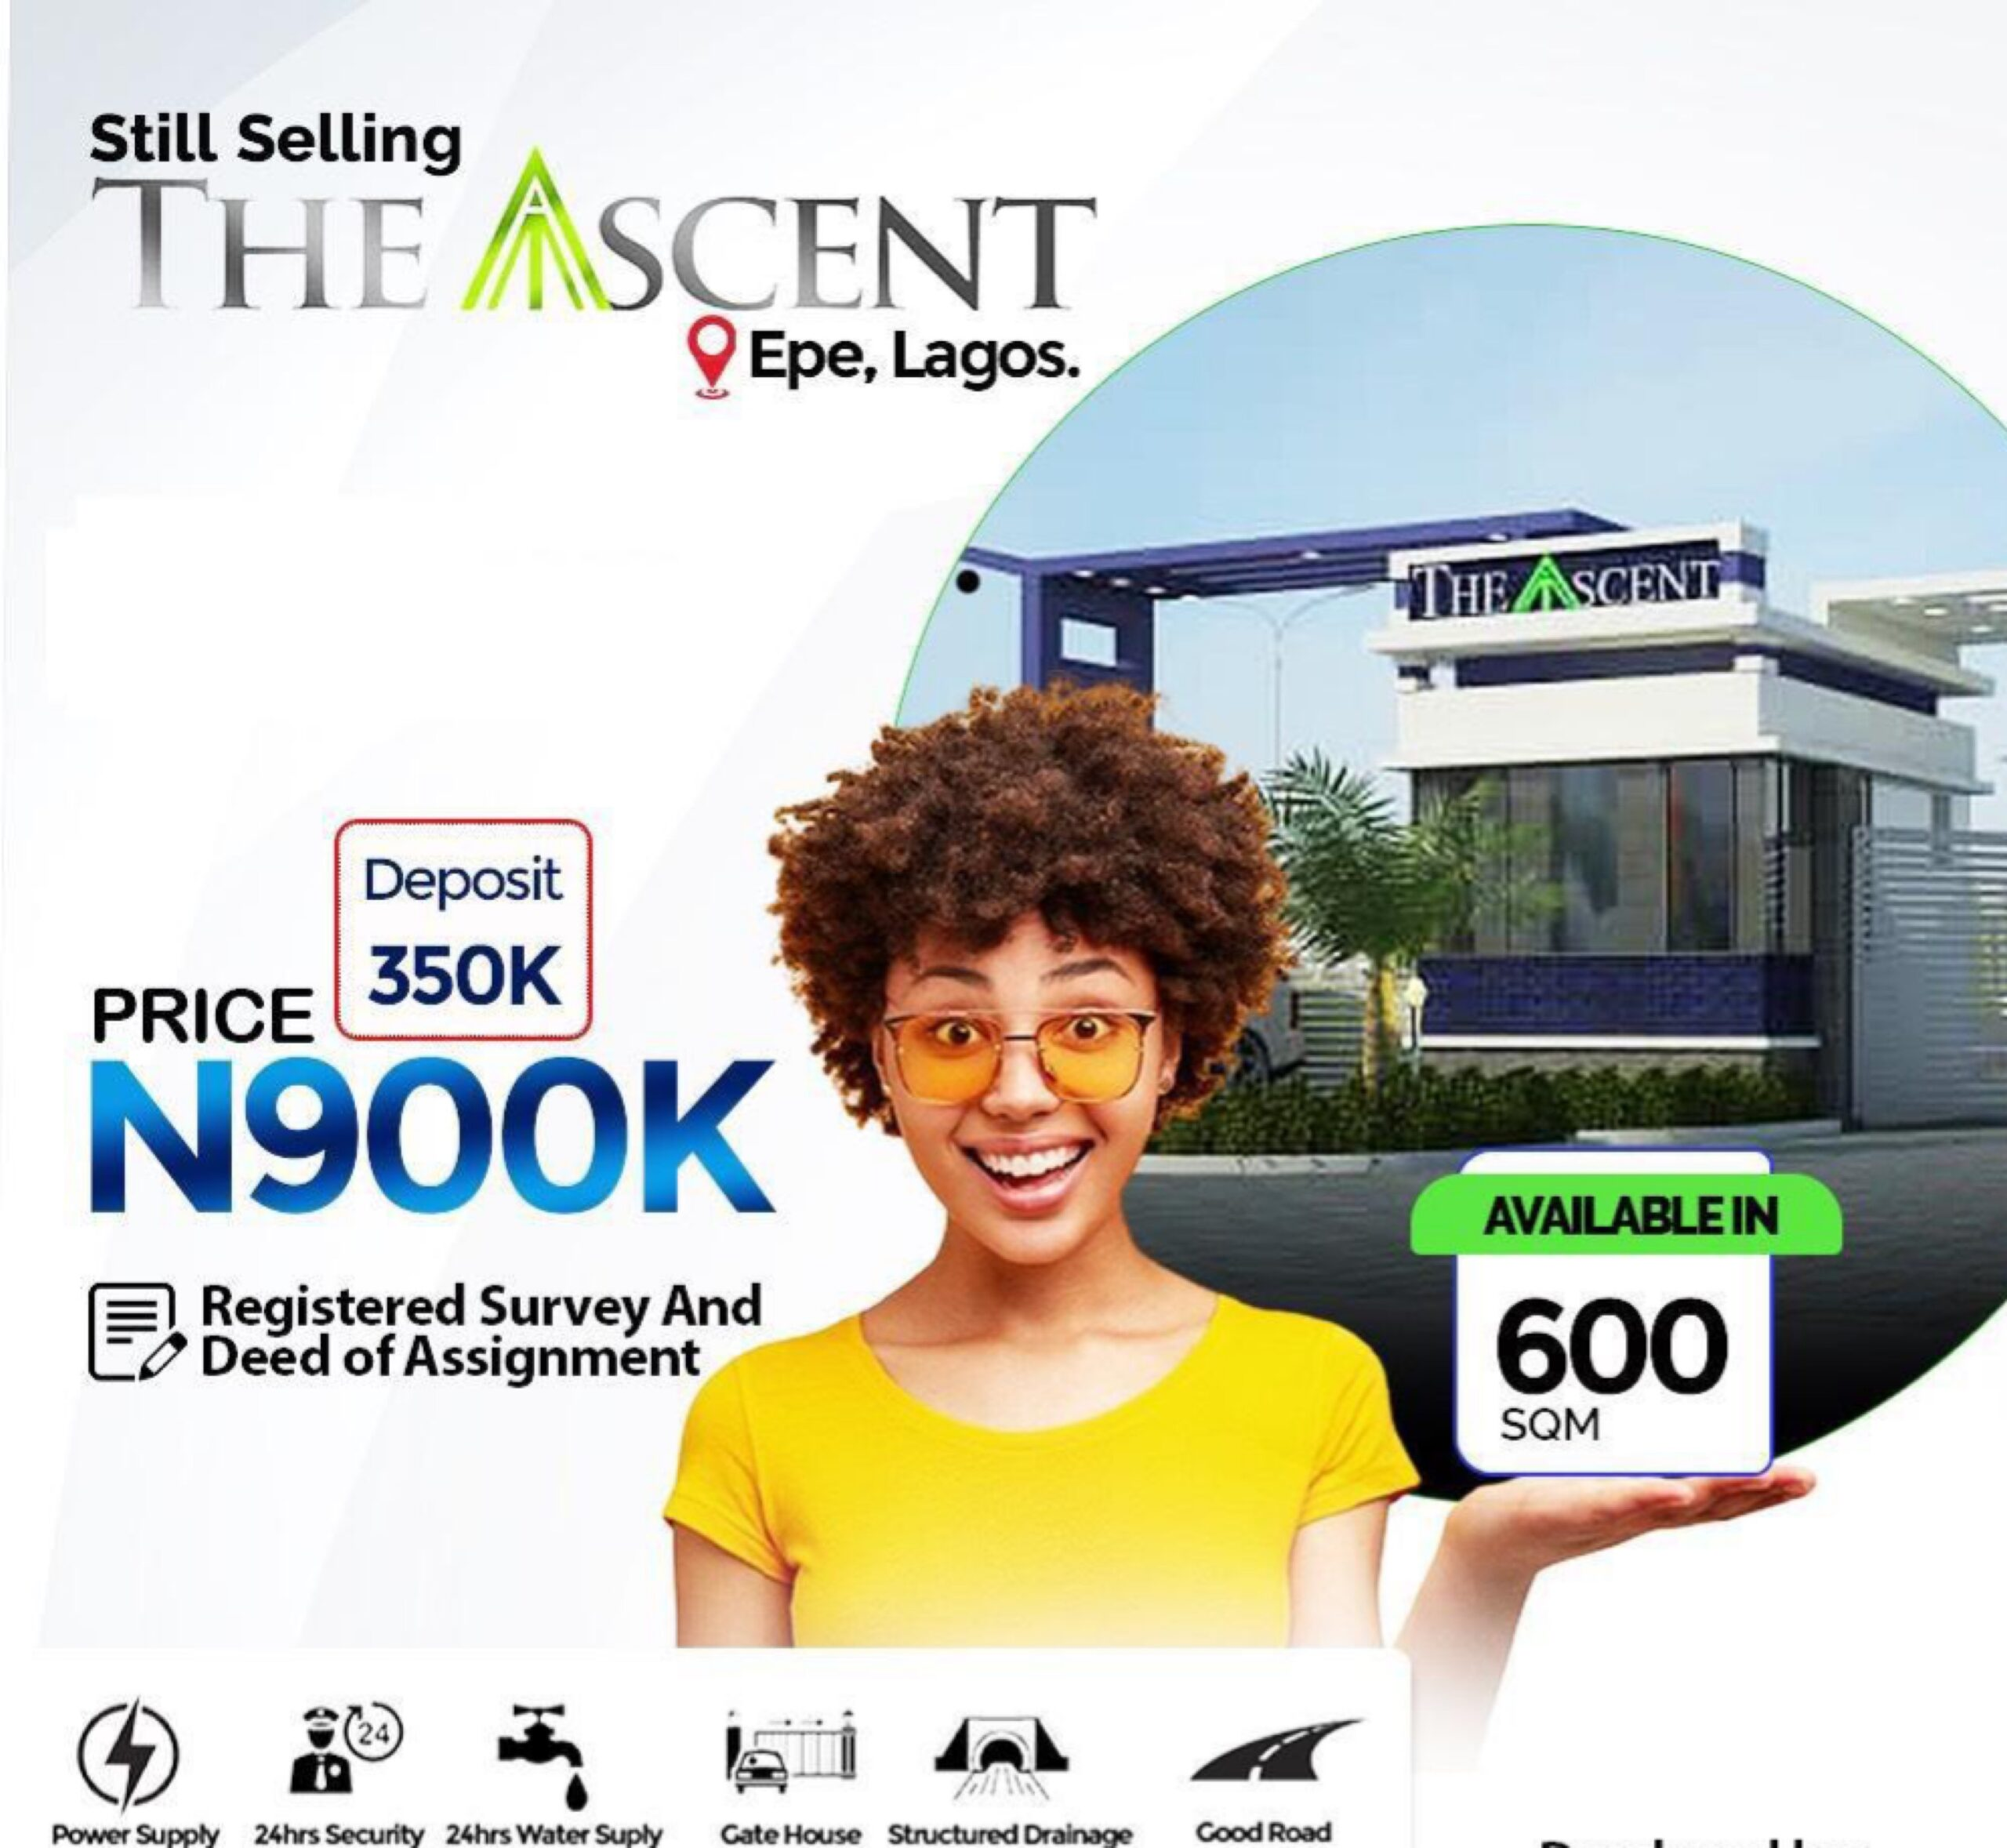 600sqm DRY LANDS IN THE ASCENT EPE